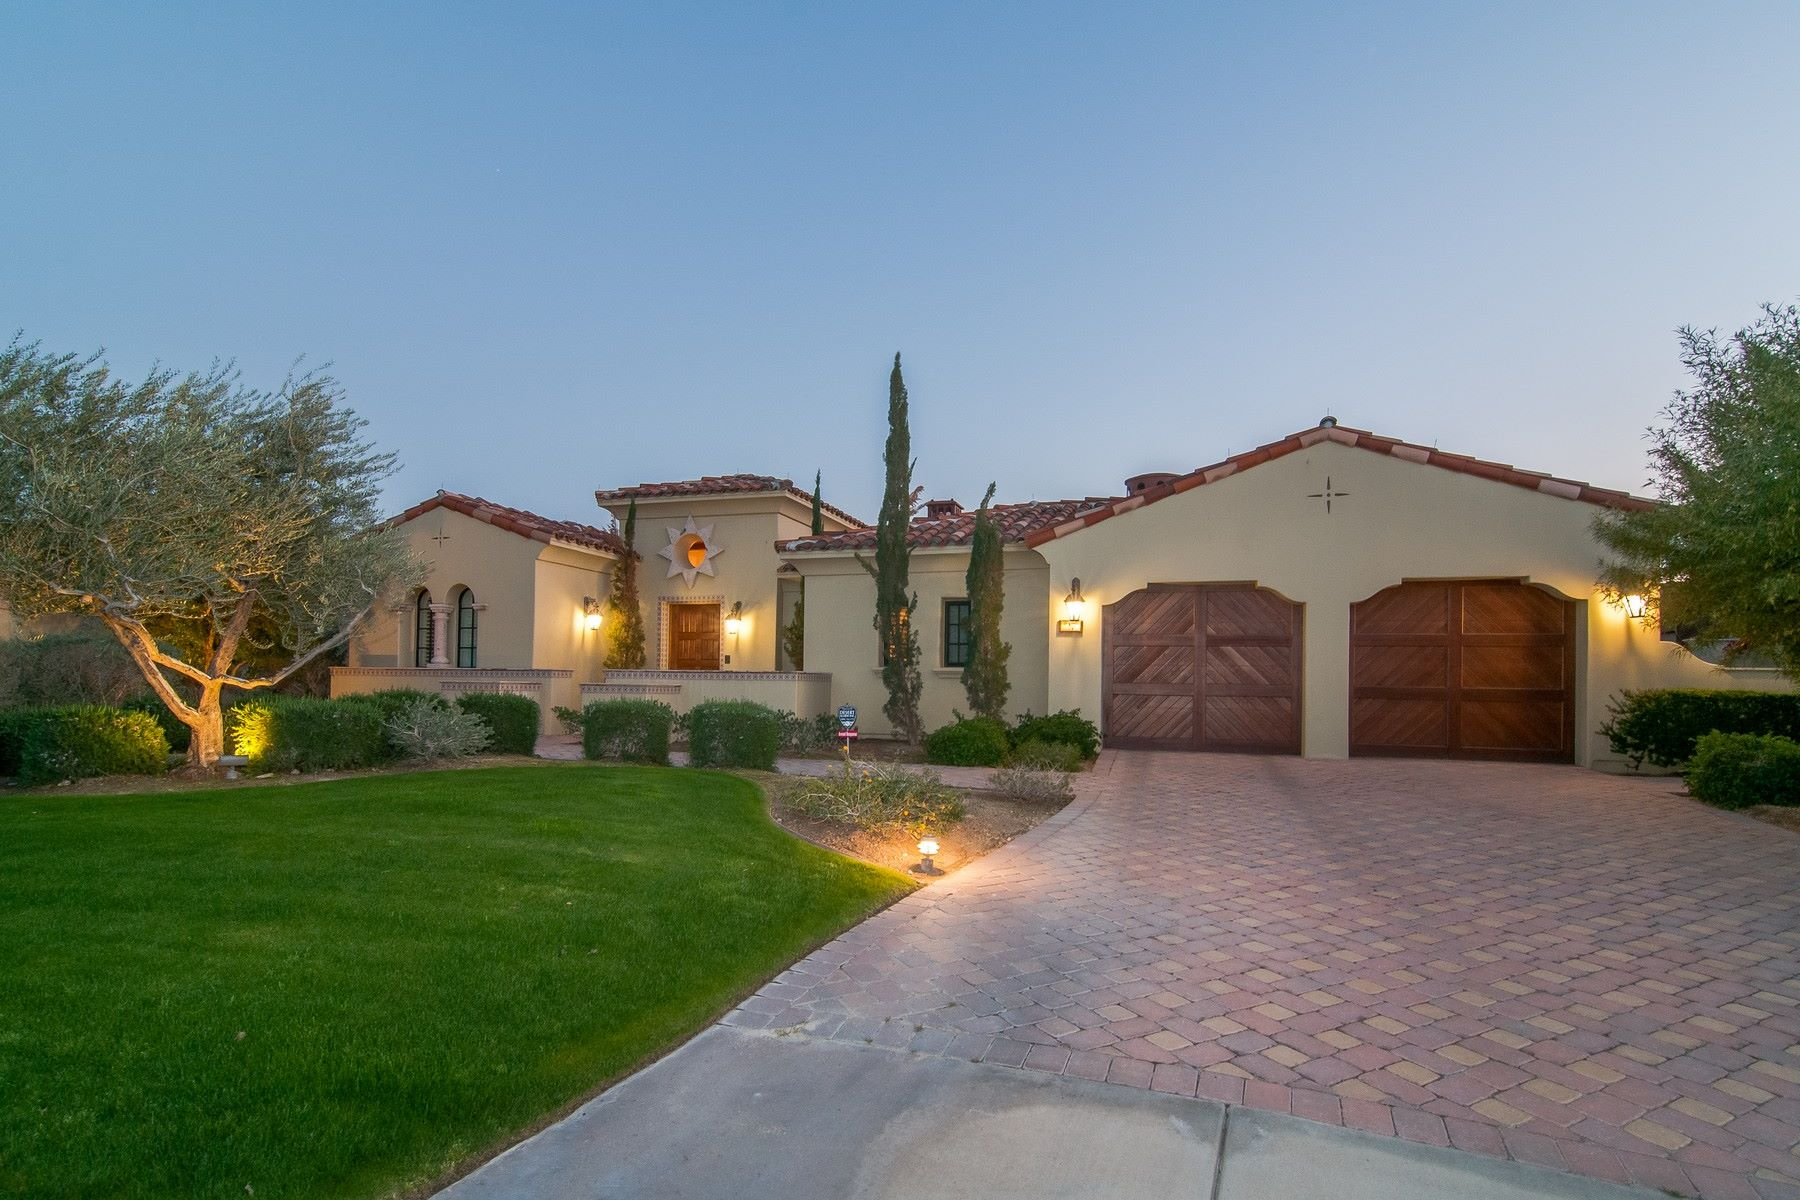 Single Family Home for Sale at 27 Cassis Circle Rancho Mirage, California 92270 United States